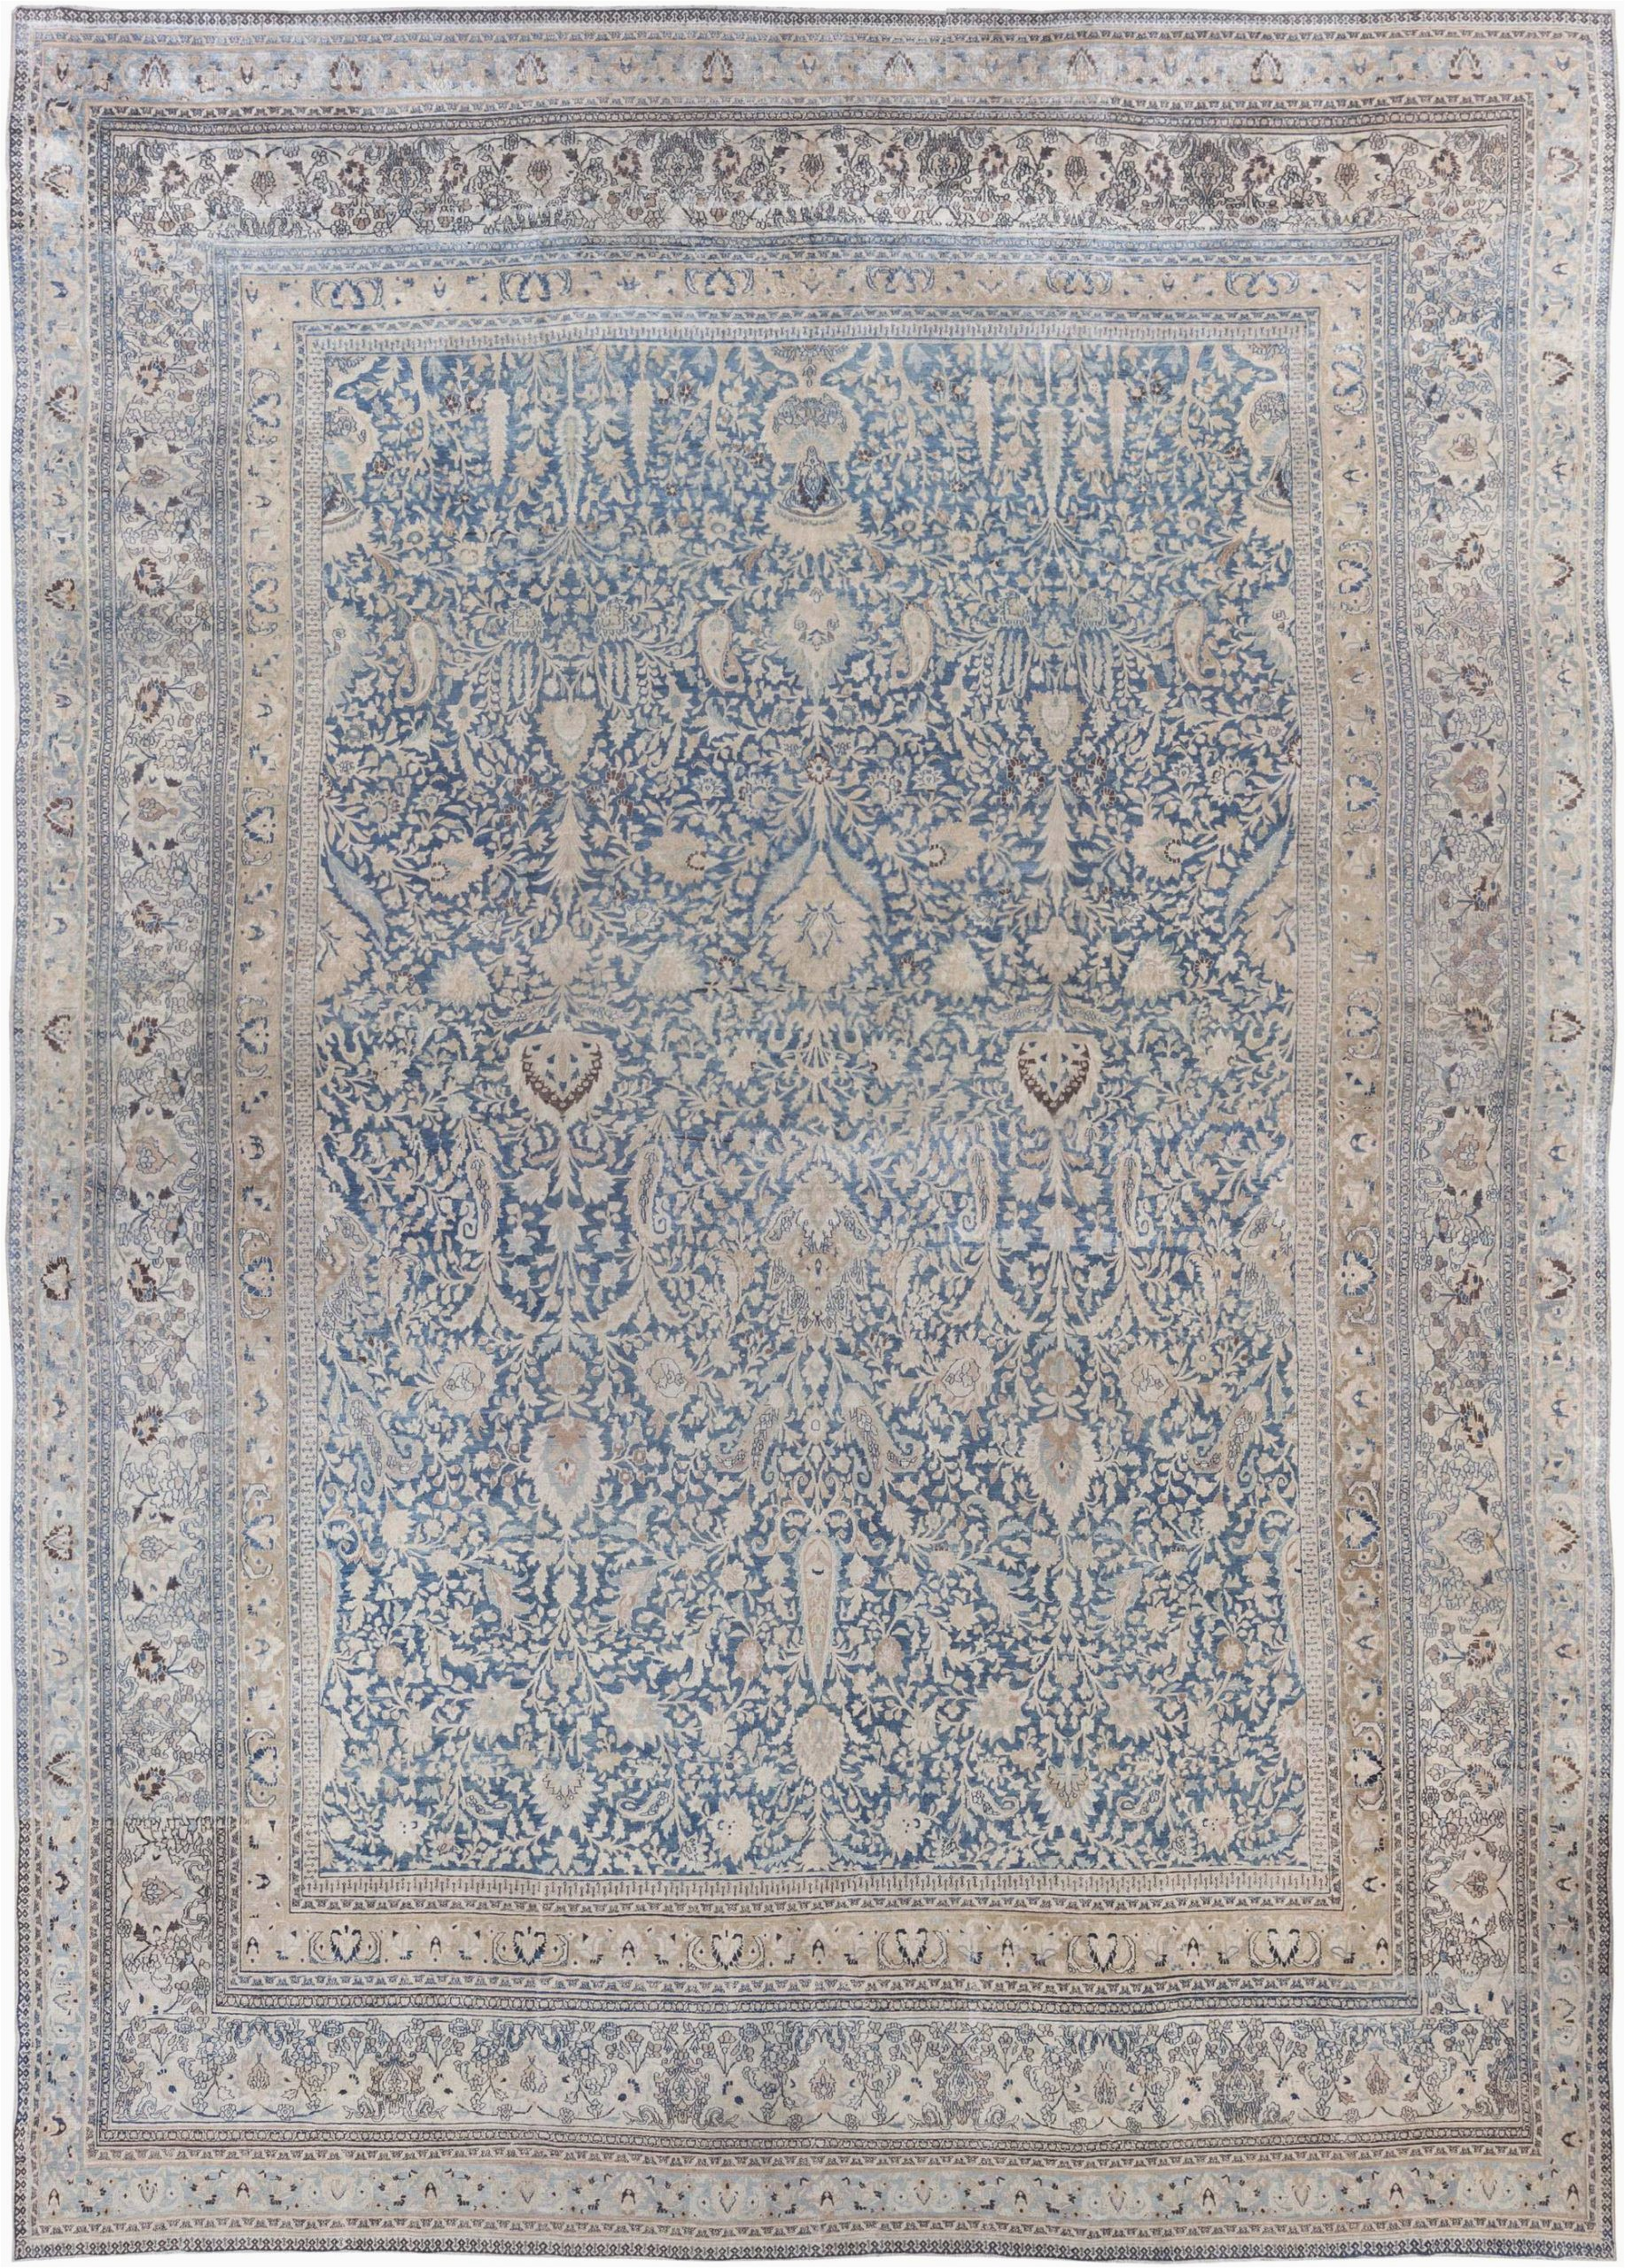 antique rugs persian khorassan blue floral abstract 23x16 bb6791